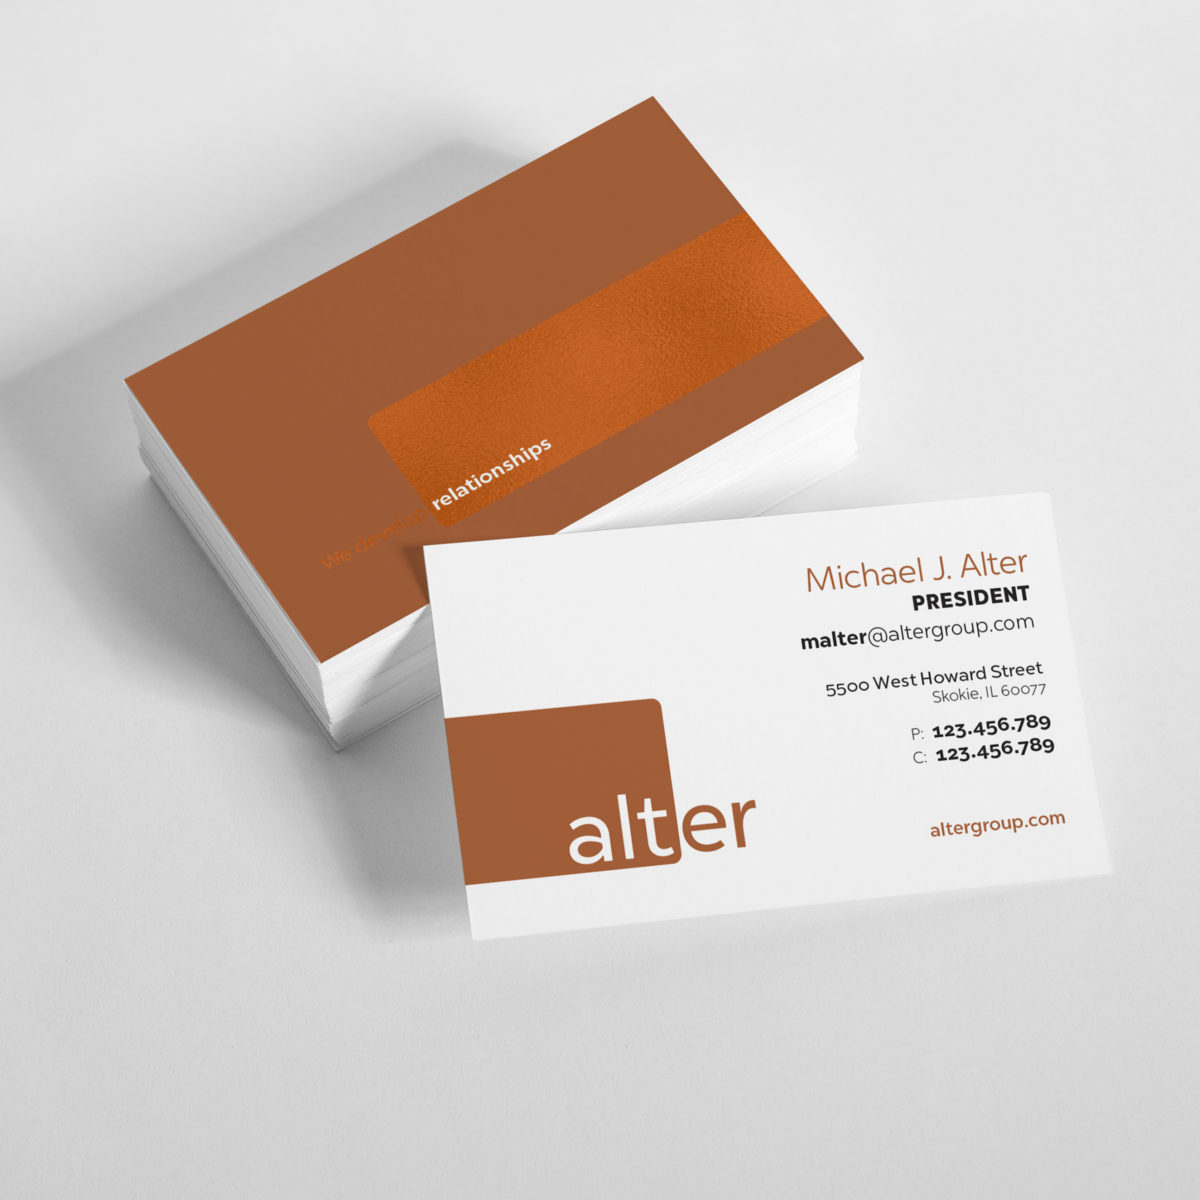 alter business cards